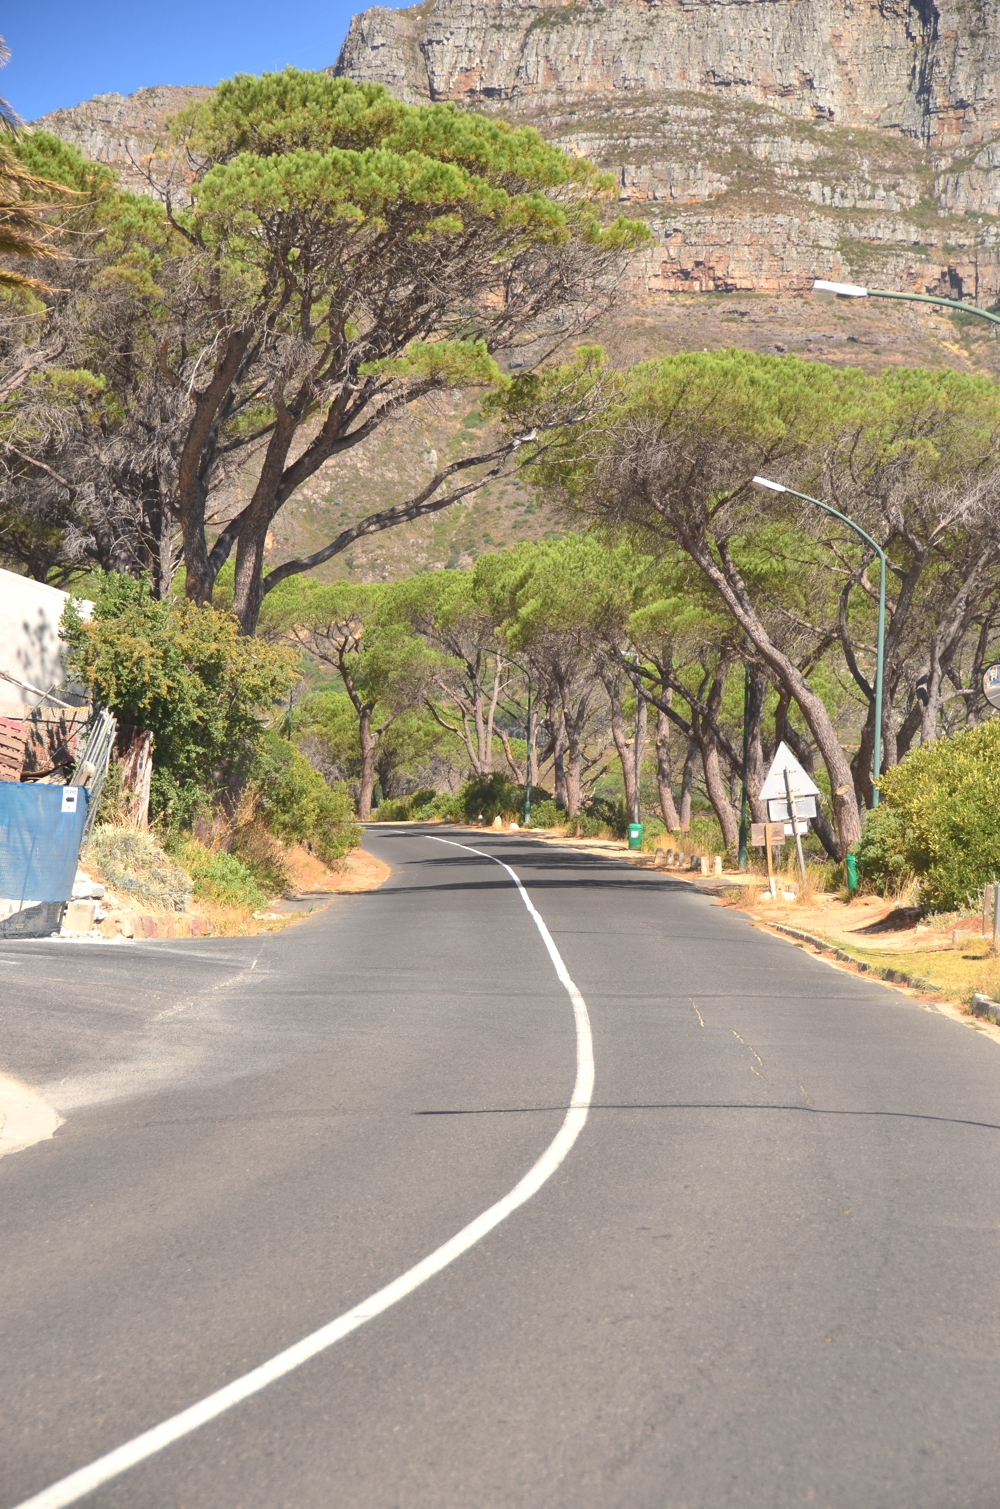 The steep road out of Camps Bay, toward Gardens